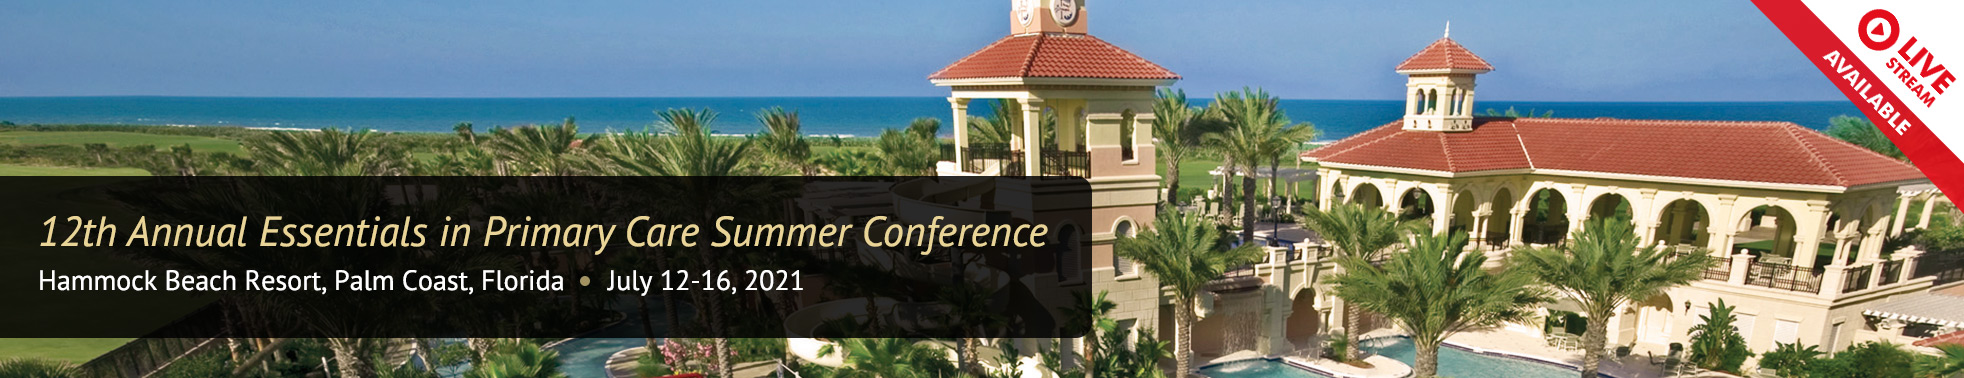 Palm Coast Florida Summer CME 2021